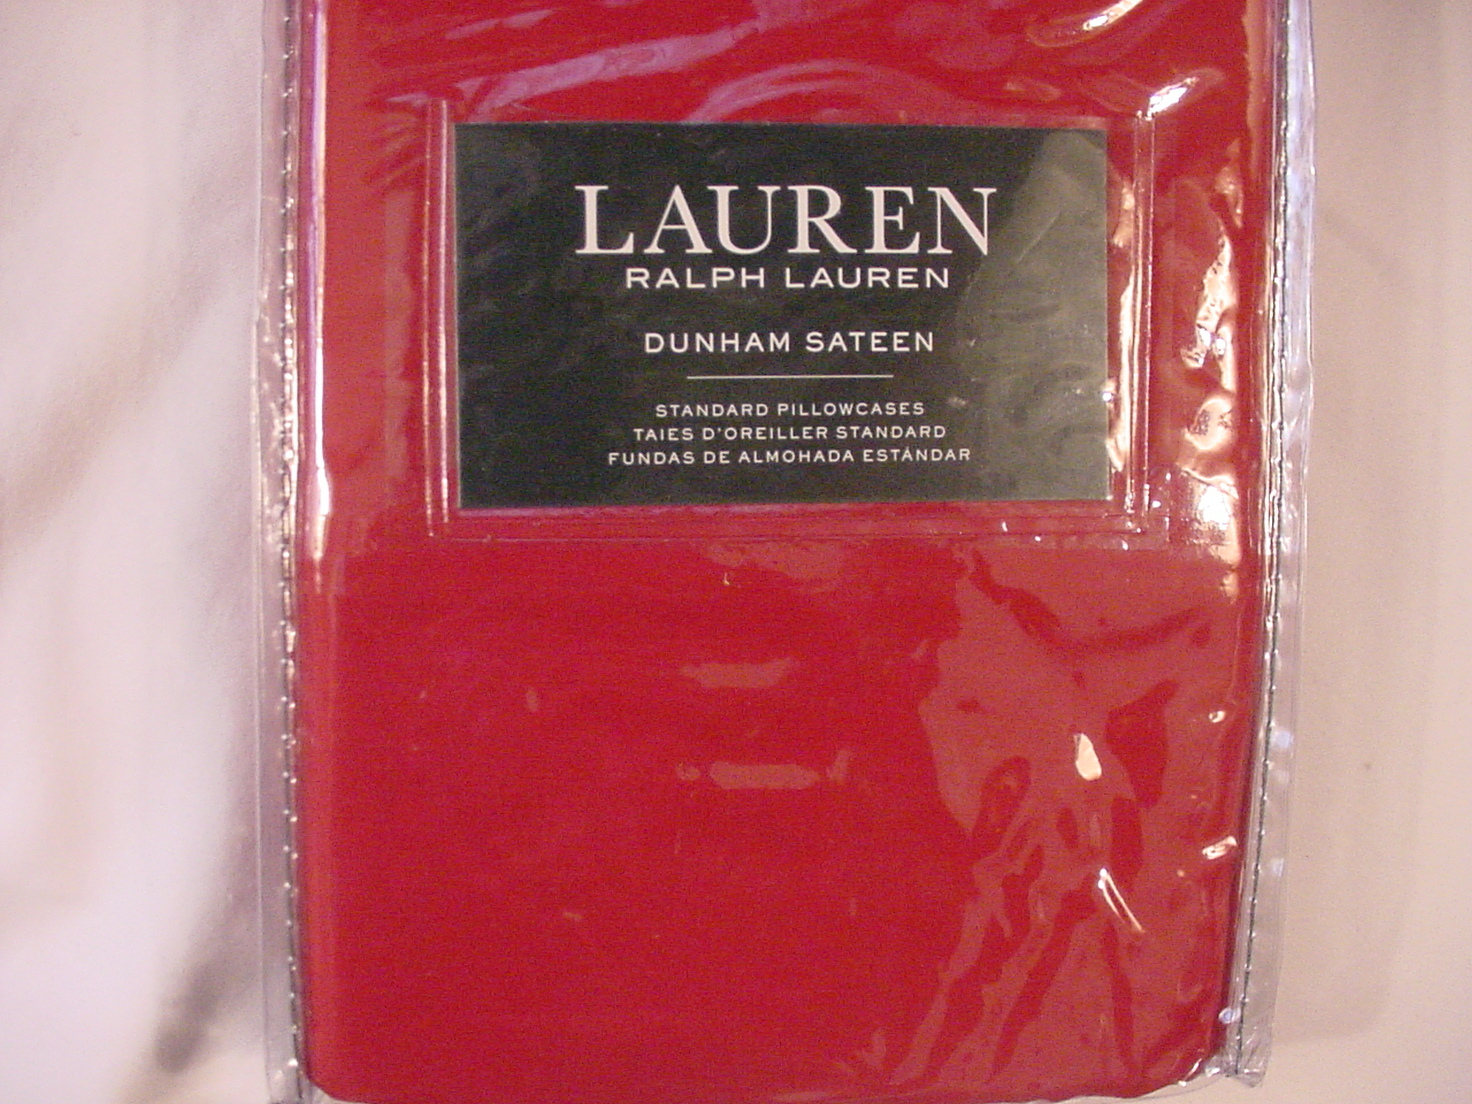 Ralph Lauren Dunham Admiral Red Pillowcases Standard